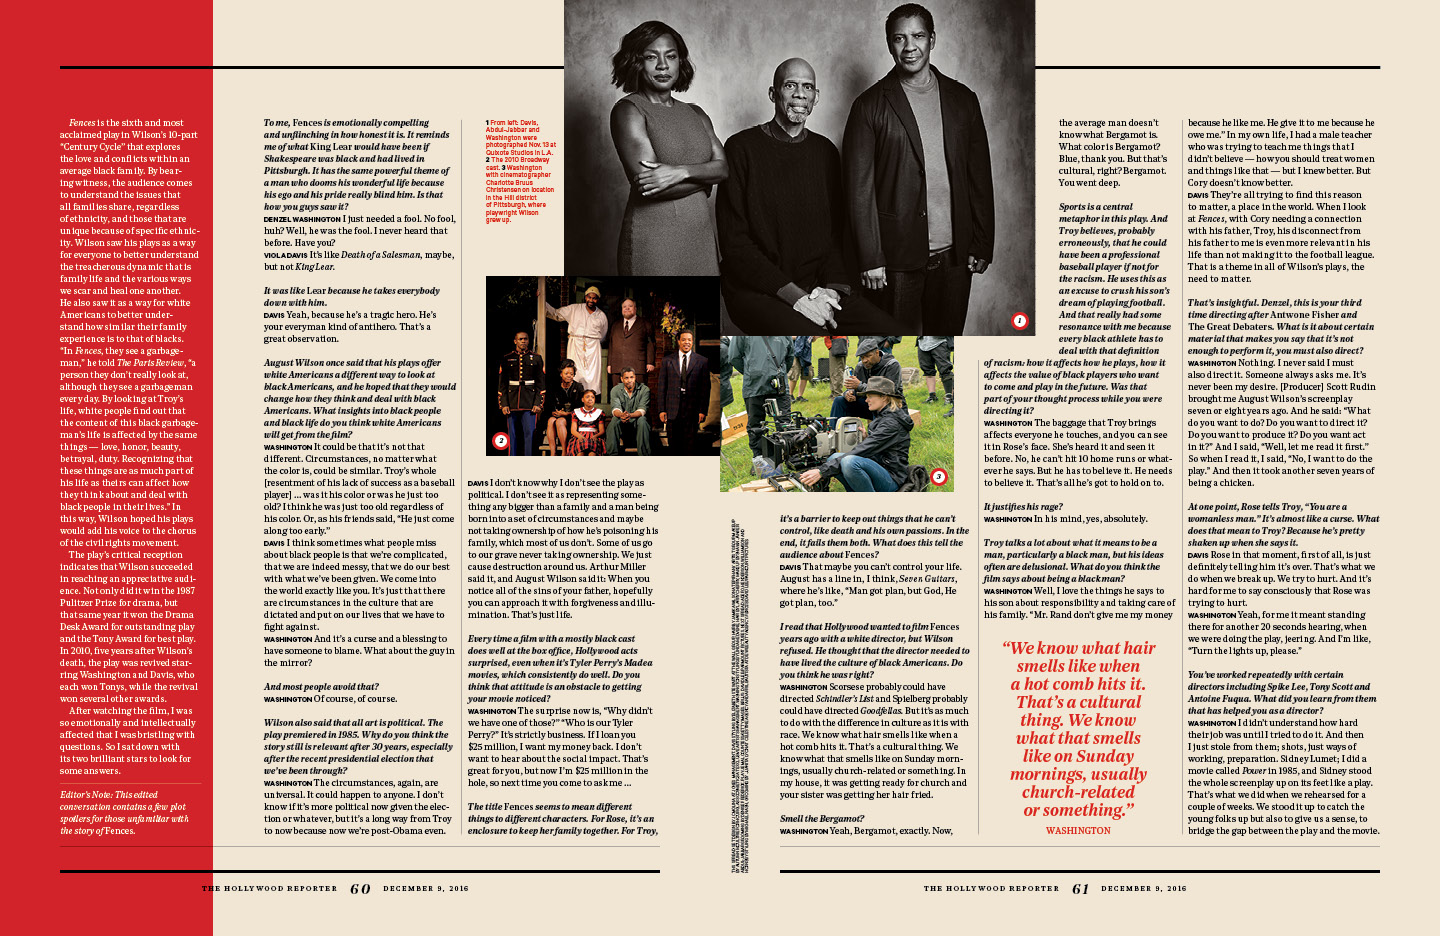 Race, Family and Fences in the Trump Era / The Hollywood Reporter / 12.9.16 / kelsey stefanson / art direction + graphic design / yeskelsey.com